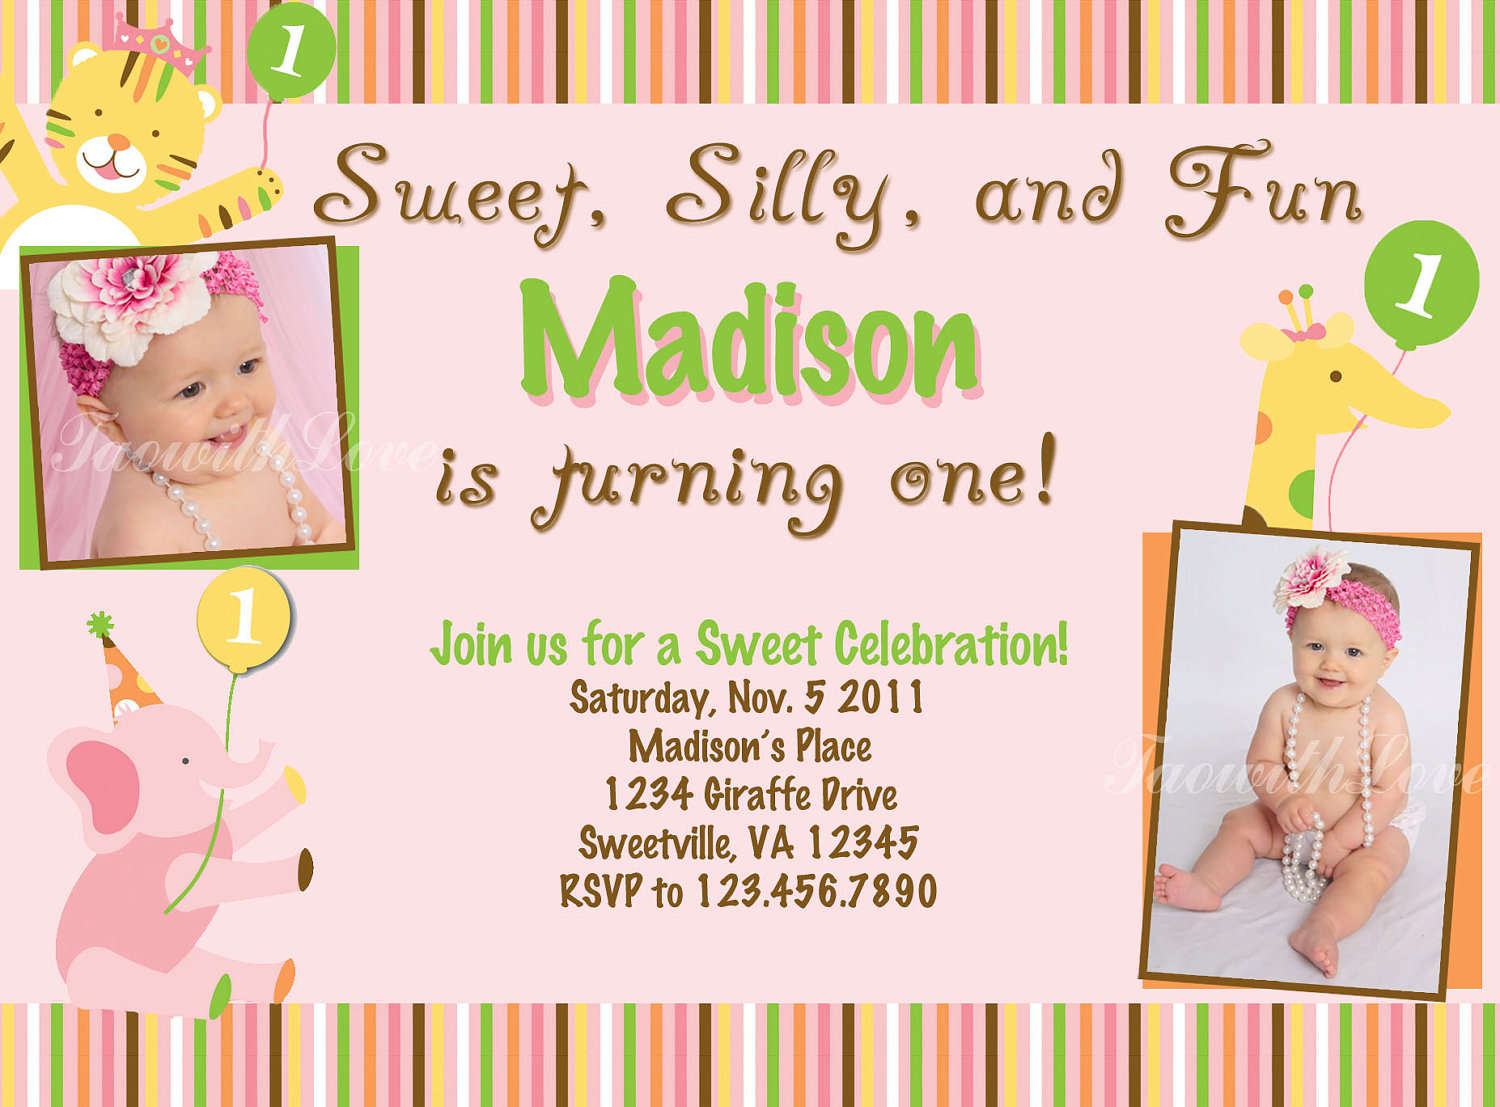 free printable 1st birthday invitations ; Sweet-Silly-and-Fun-Free-Printable-1st-Birthday-Invitations-with-Baby-Madison